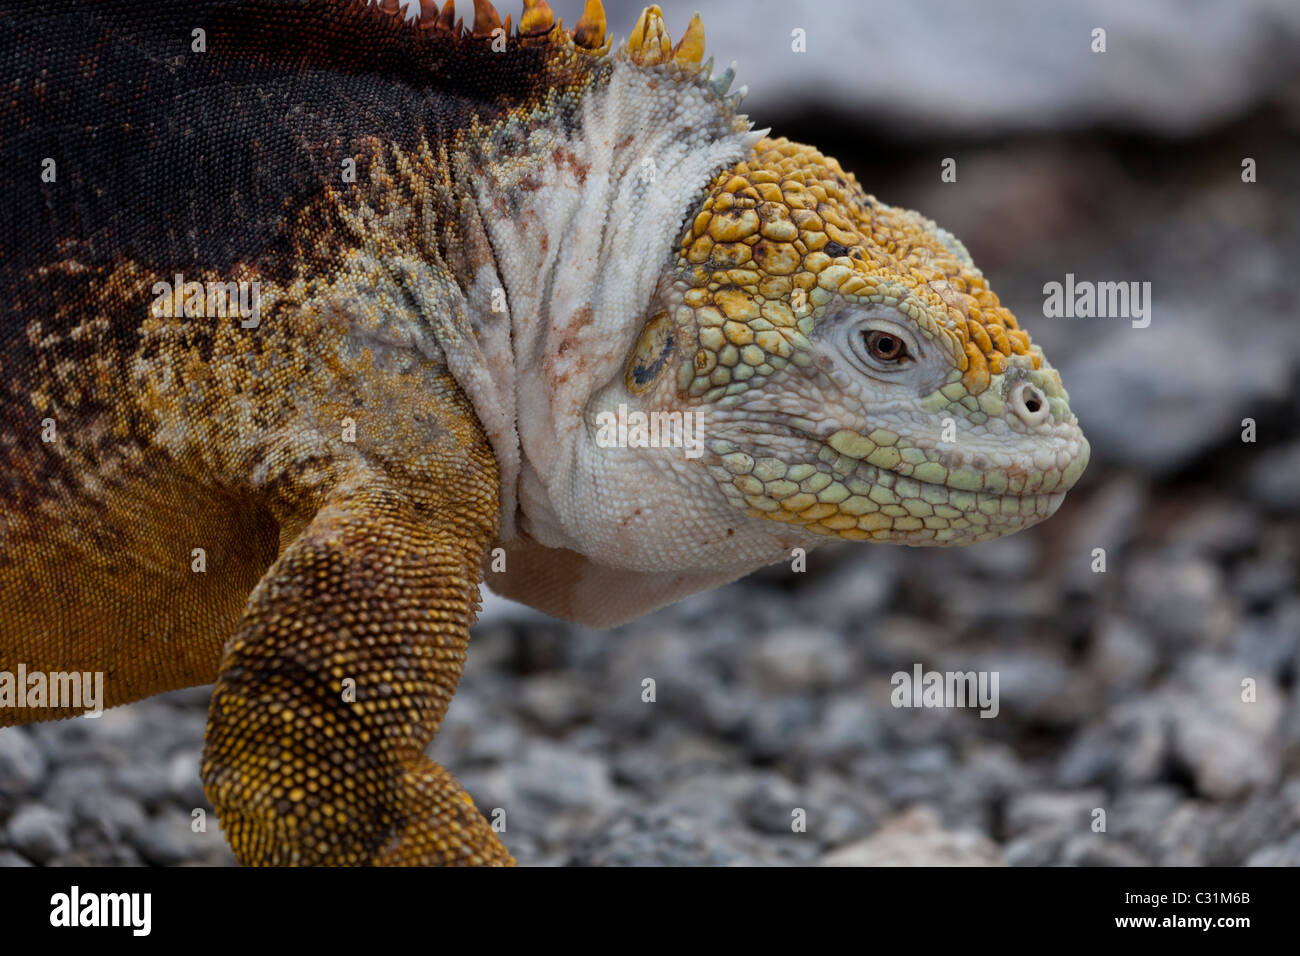 land iguana Conolophus spp Galapagos islands Ecuador - Stock Image